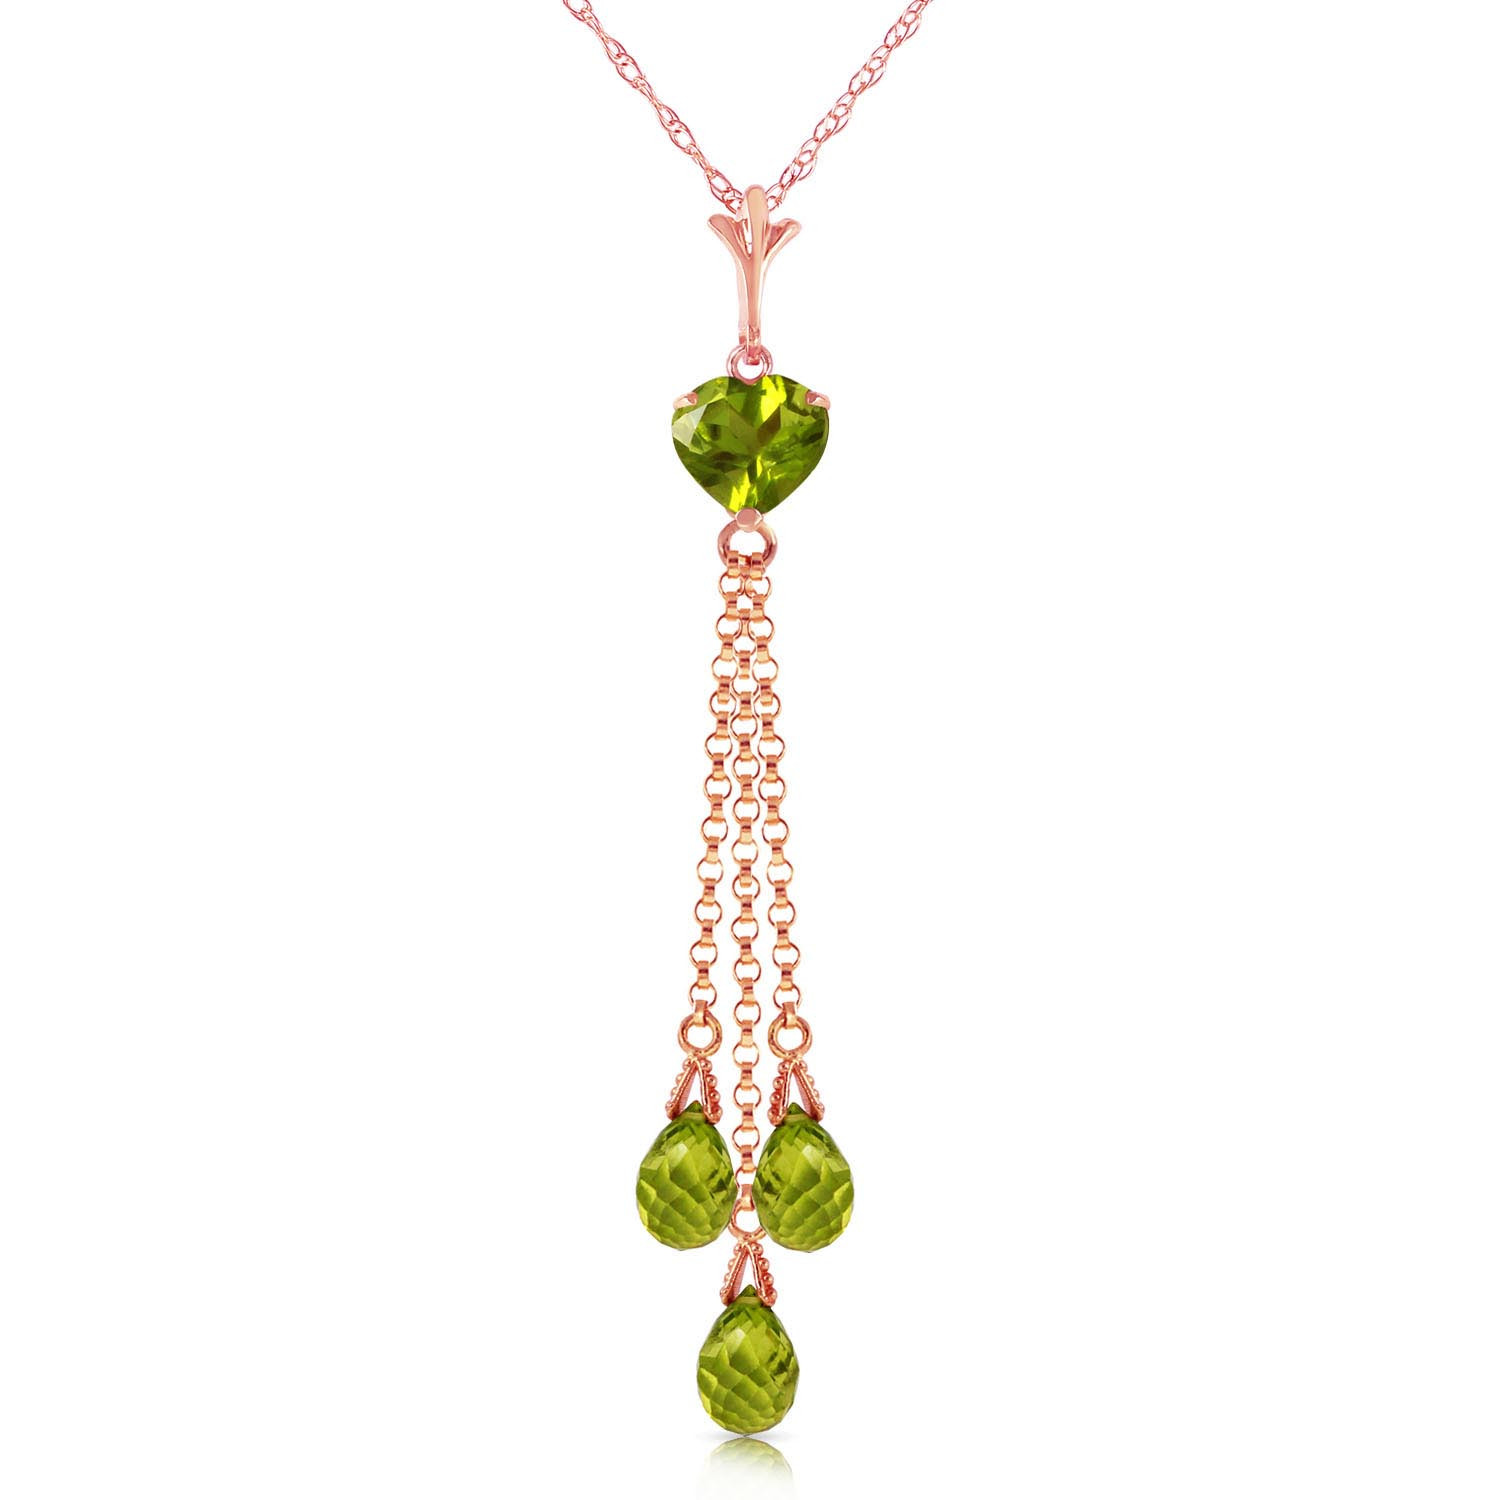 Peridot Comet Tail Pendant Necklace 4.75 ctw in 9ct Rose Gold